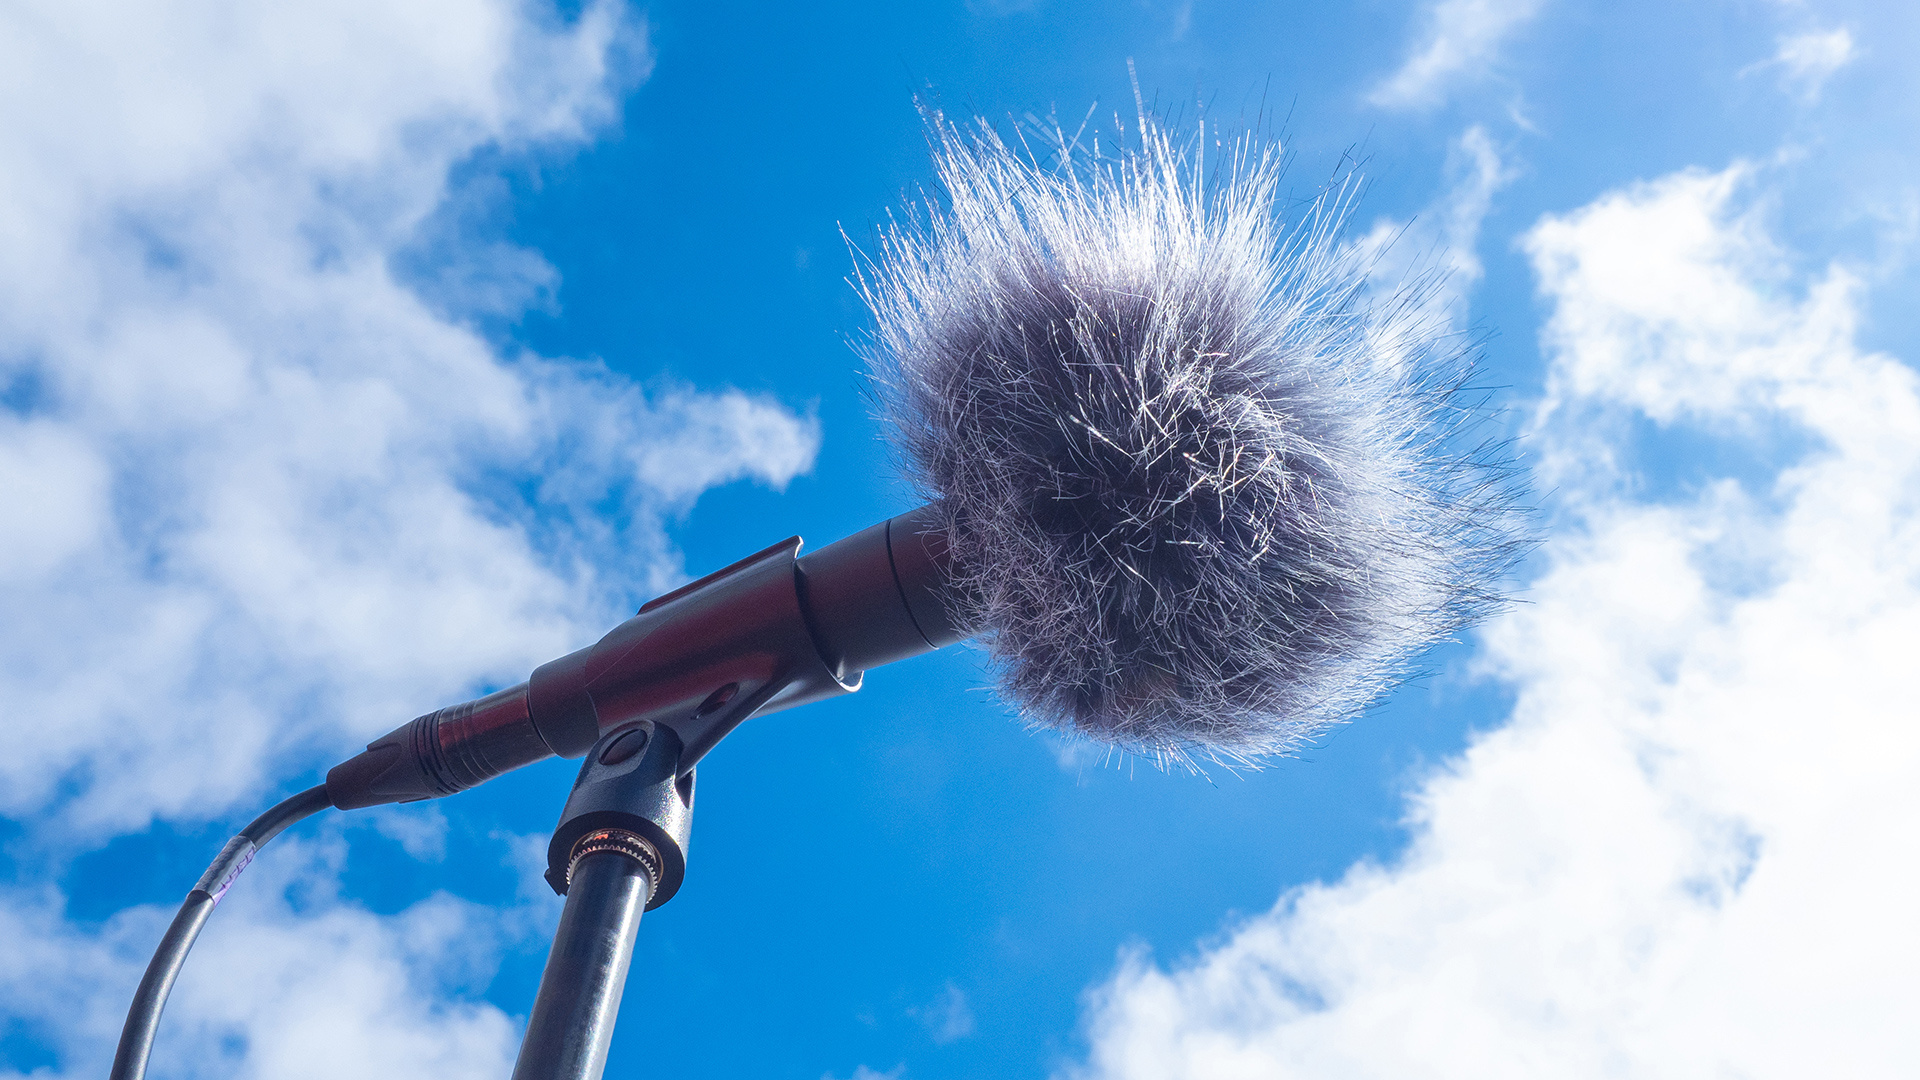 How to reduce wind noise in audio.